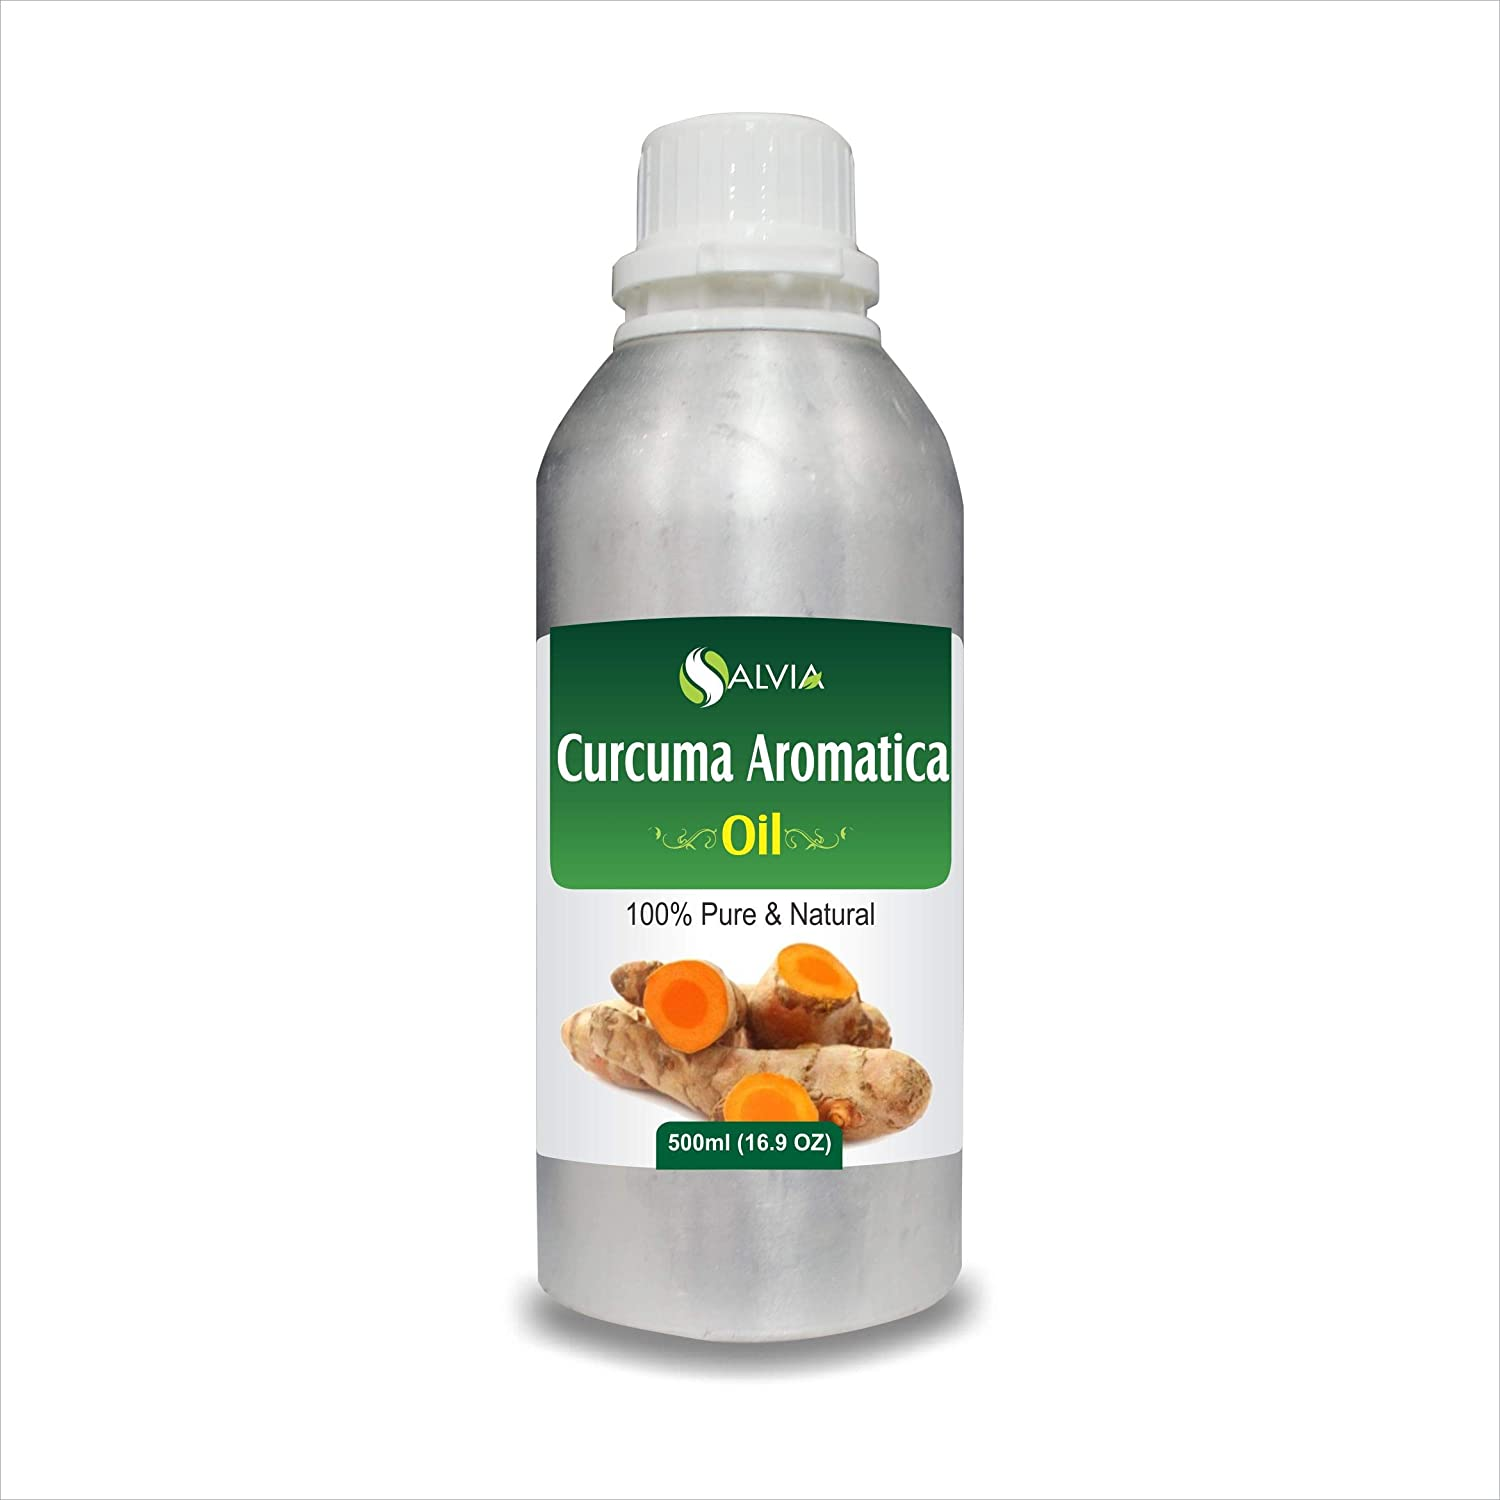 人気商品は Curcuma Undiluted Aromatica Oil 500ml (Curcuma aromatica salisb) 100% aromatica Natural Pure Undiluted Uncut Essential Oil 500ml 500 ML B07JR89RXT, お名前シールのお店 おなまえ王国:9898ad52 --- a0267596.xsph.ru